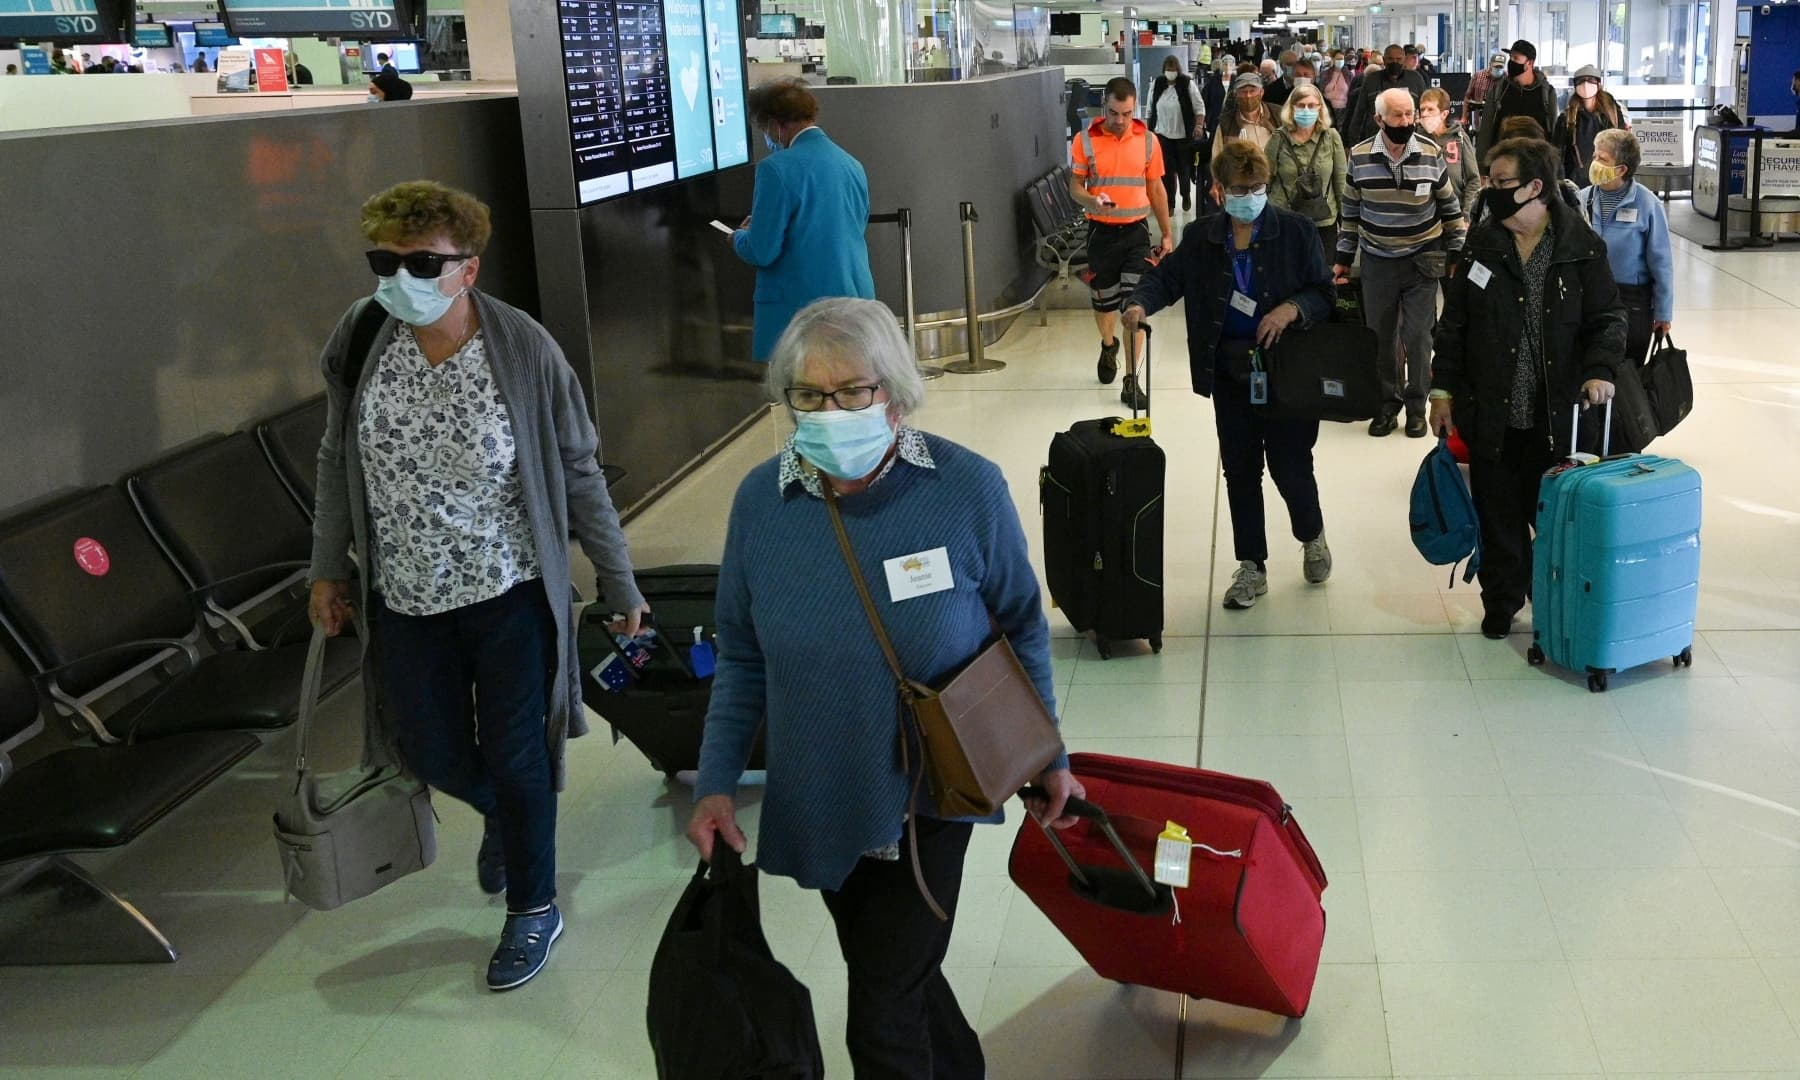 Travellers proceed to the check-in counters for New Zealand flights at Sydney International Airport on April 19, as Australia and New Zealand opened a trans-Tasman quarantine-free travel bubble. — AFP